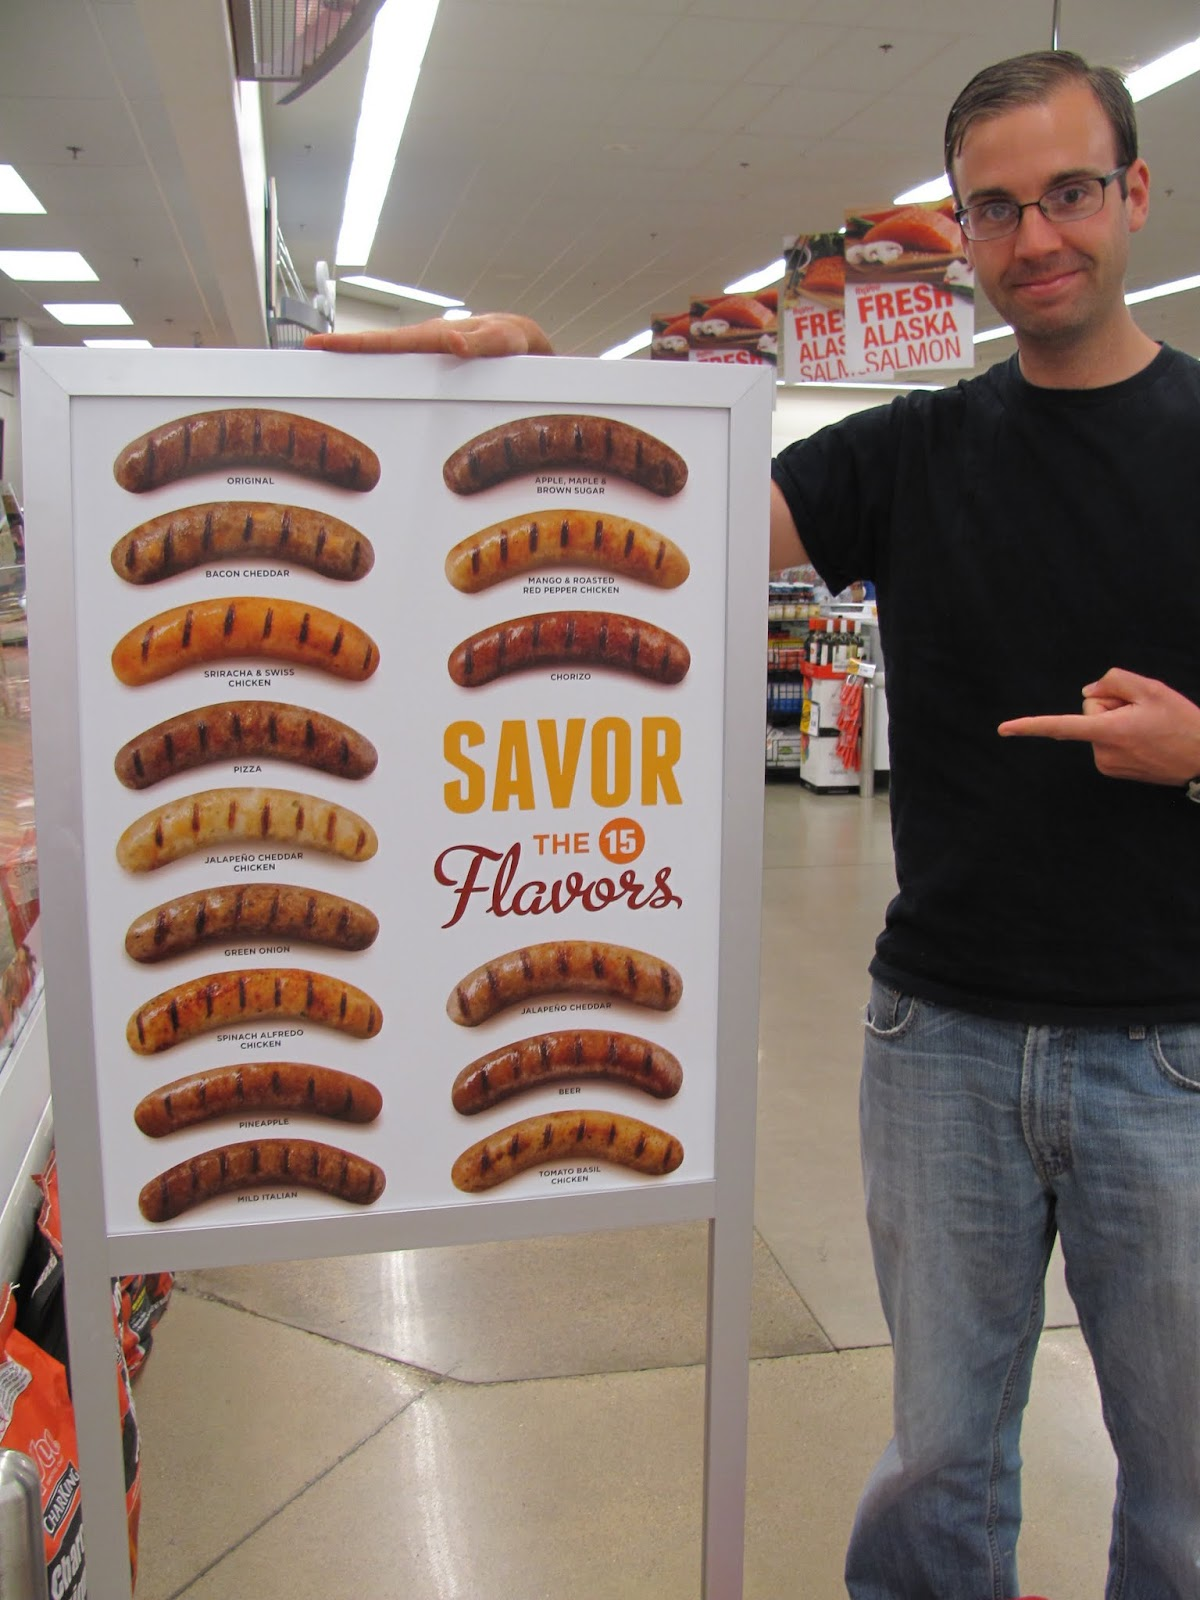 Savor the 15 flavors of American sausage